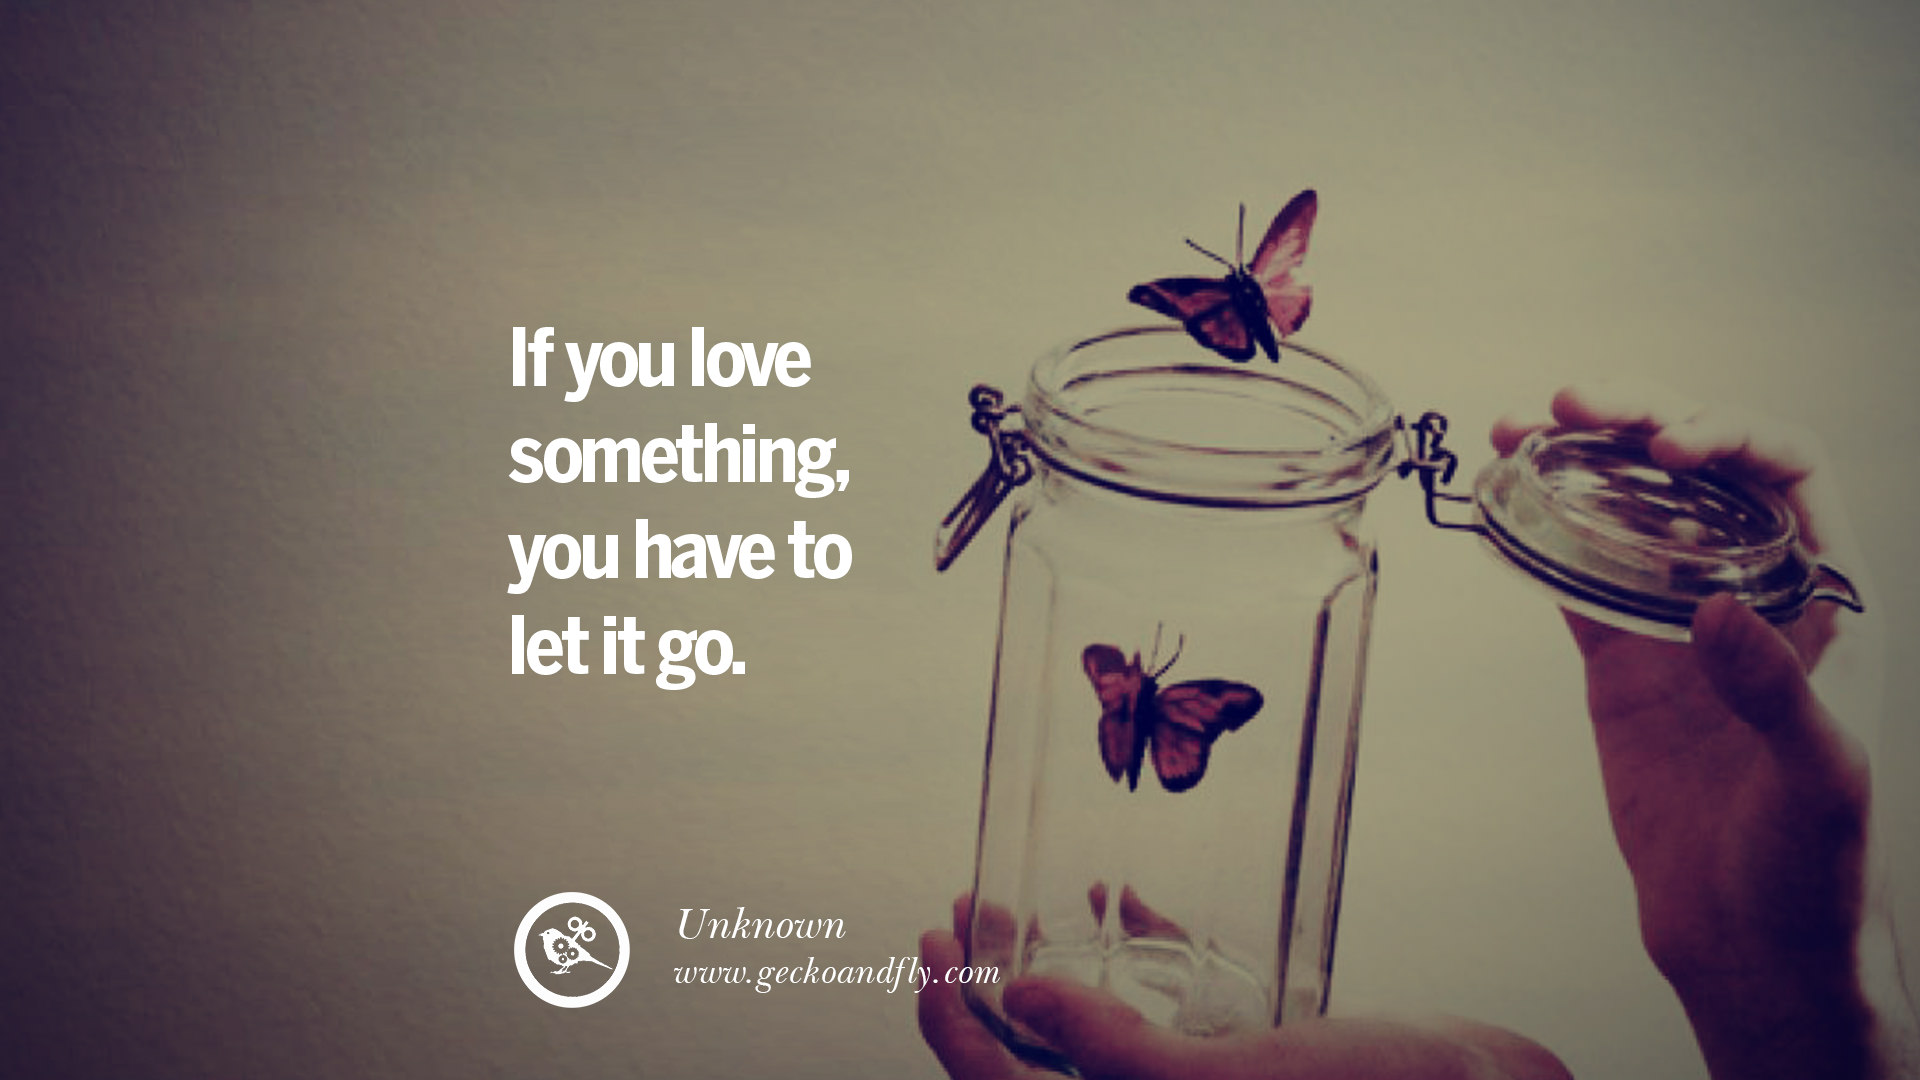 50 Quotes Life About Keep Moving And Letting Go Someone [ Part 1 ]